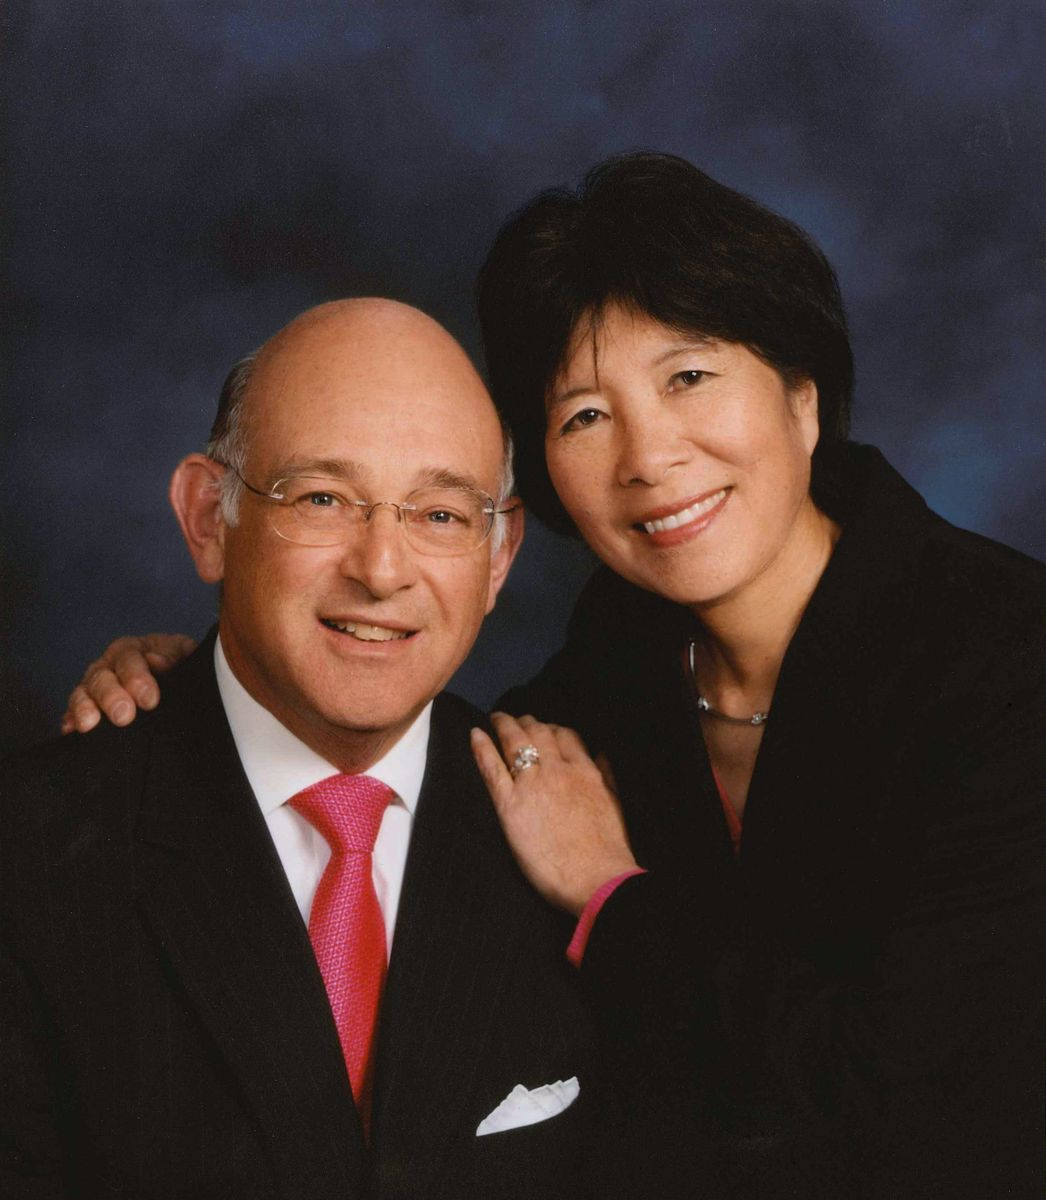 Ronald and Valerie Sugar